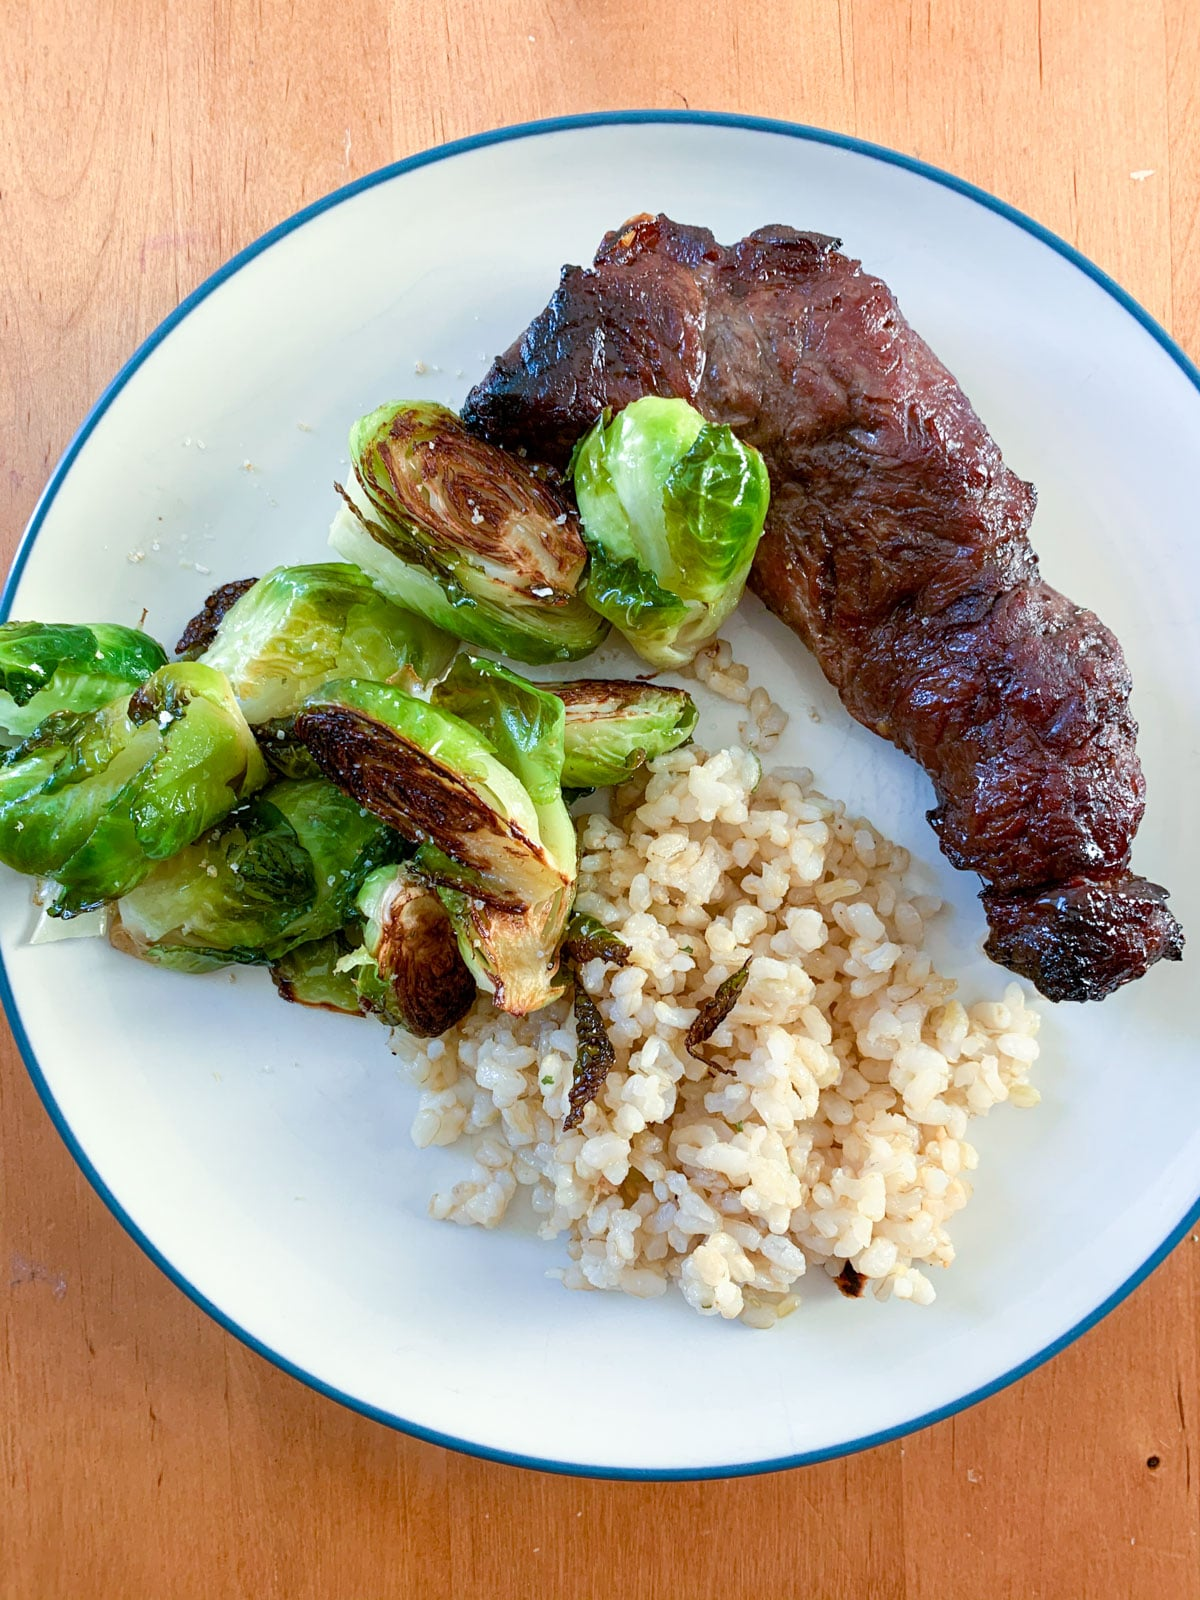 steak brussle sprouts brown rice